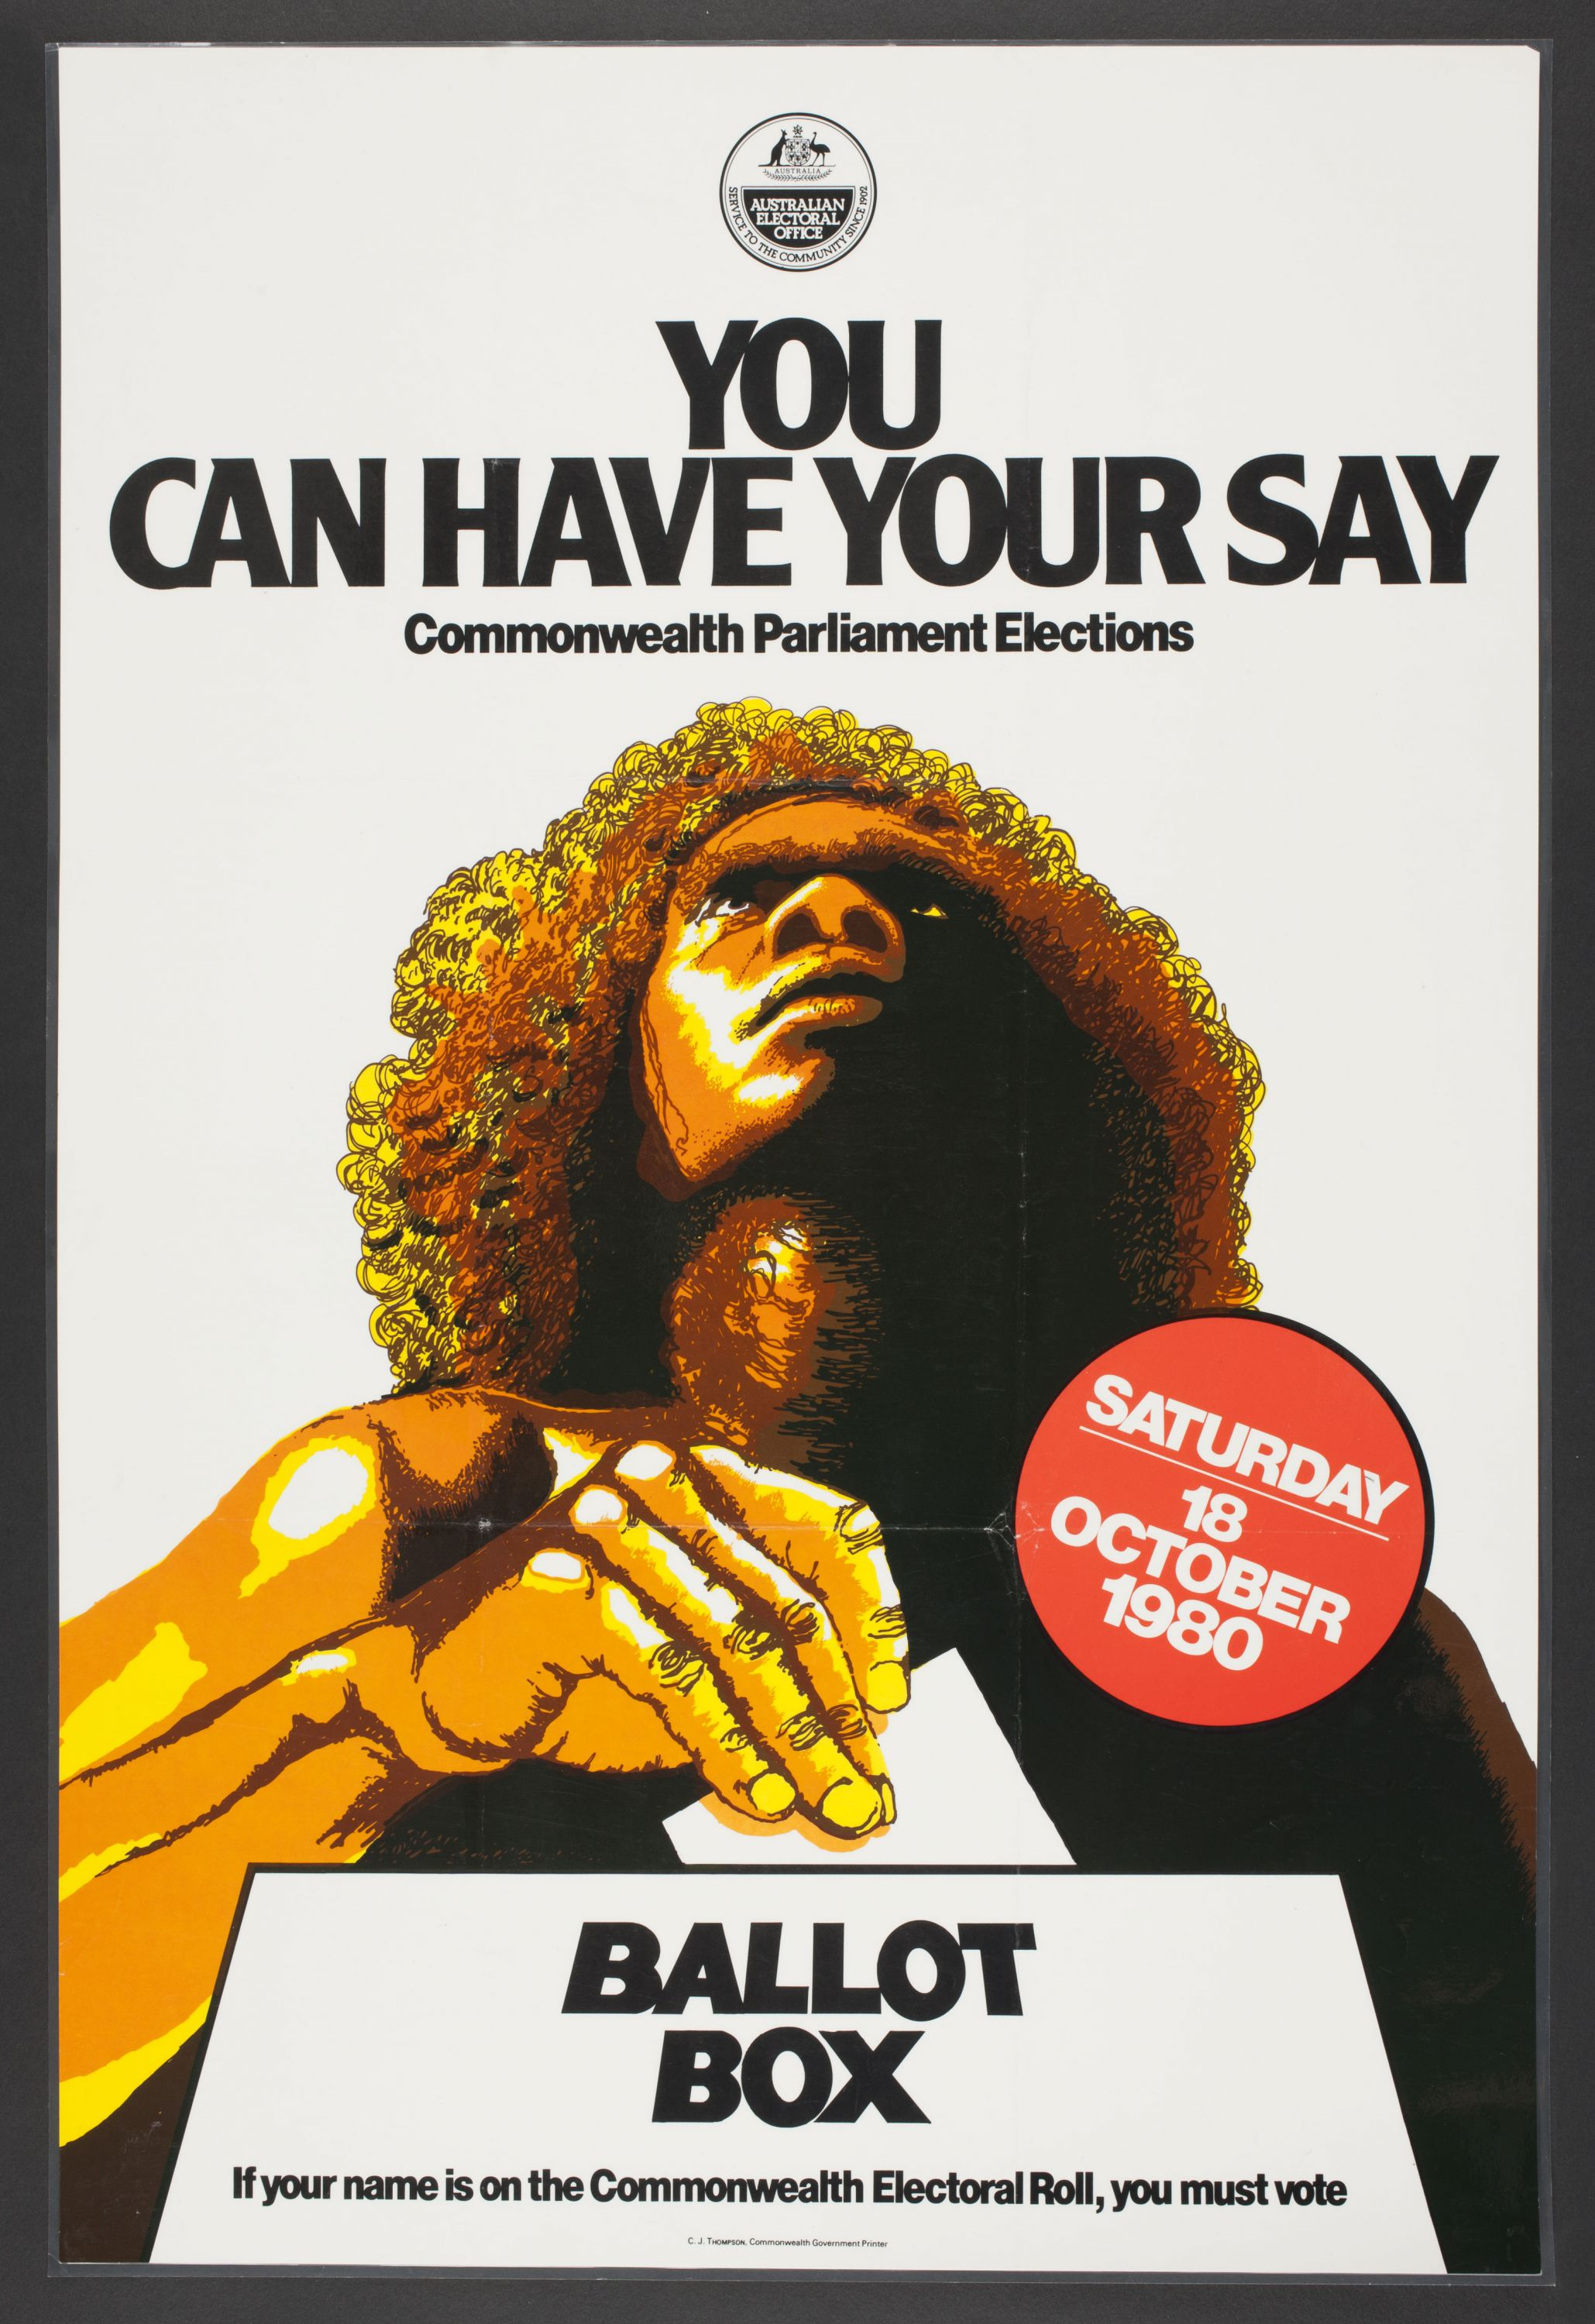 You can have your say poster